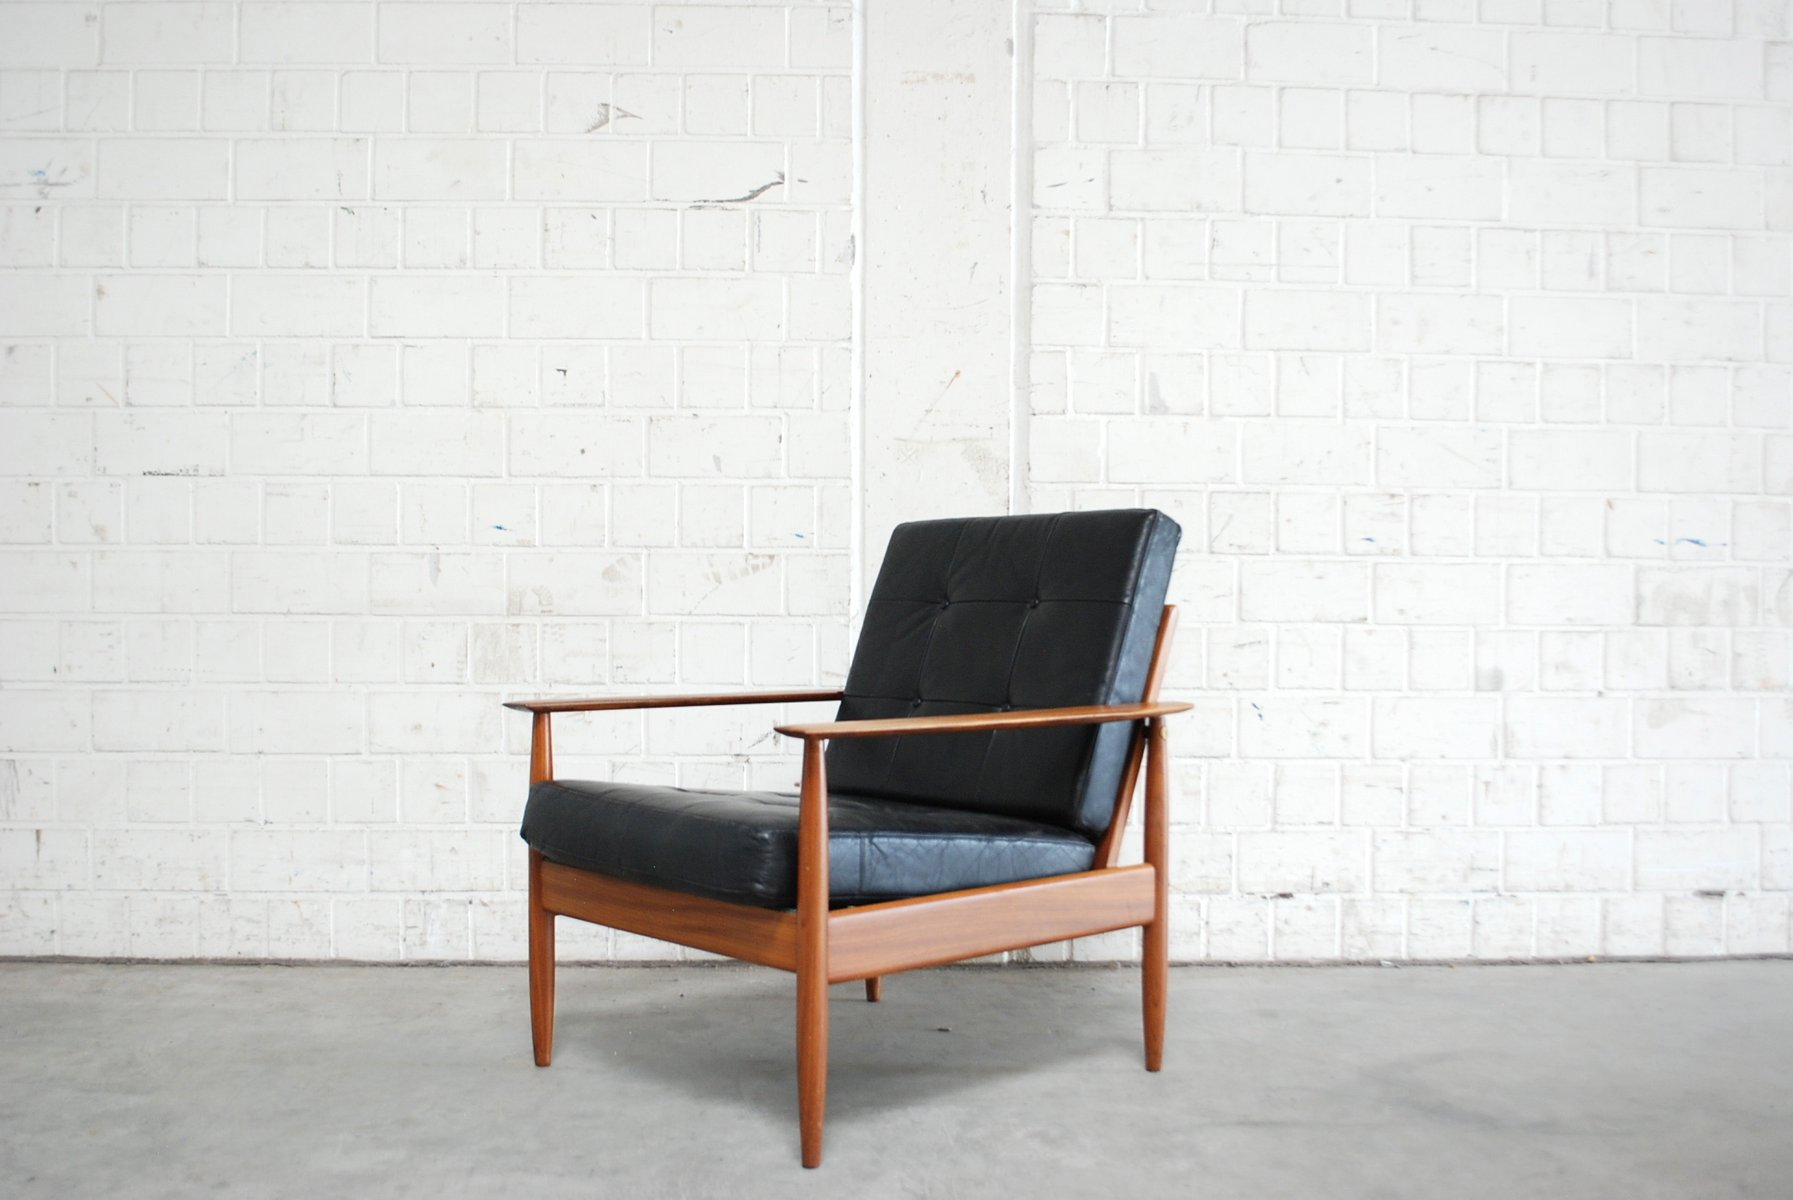 Impressive Sale At Pamono Mid Century Easy Chair Easy Chair Price Per Piece Danish Lear Easy furniture Modern Easy Chair